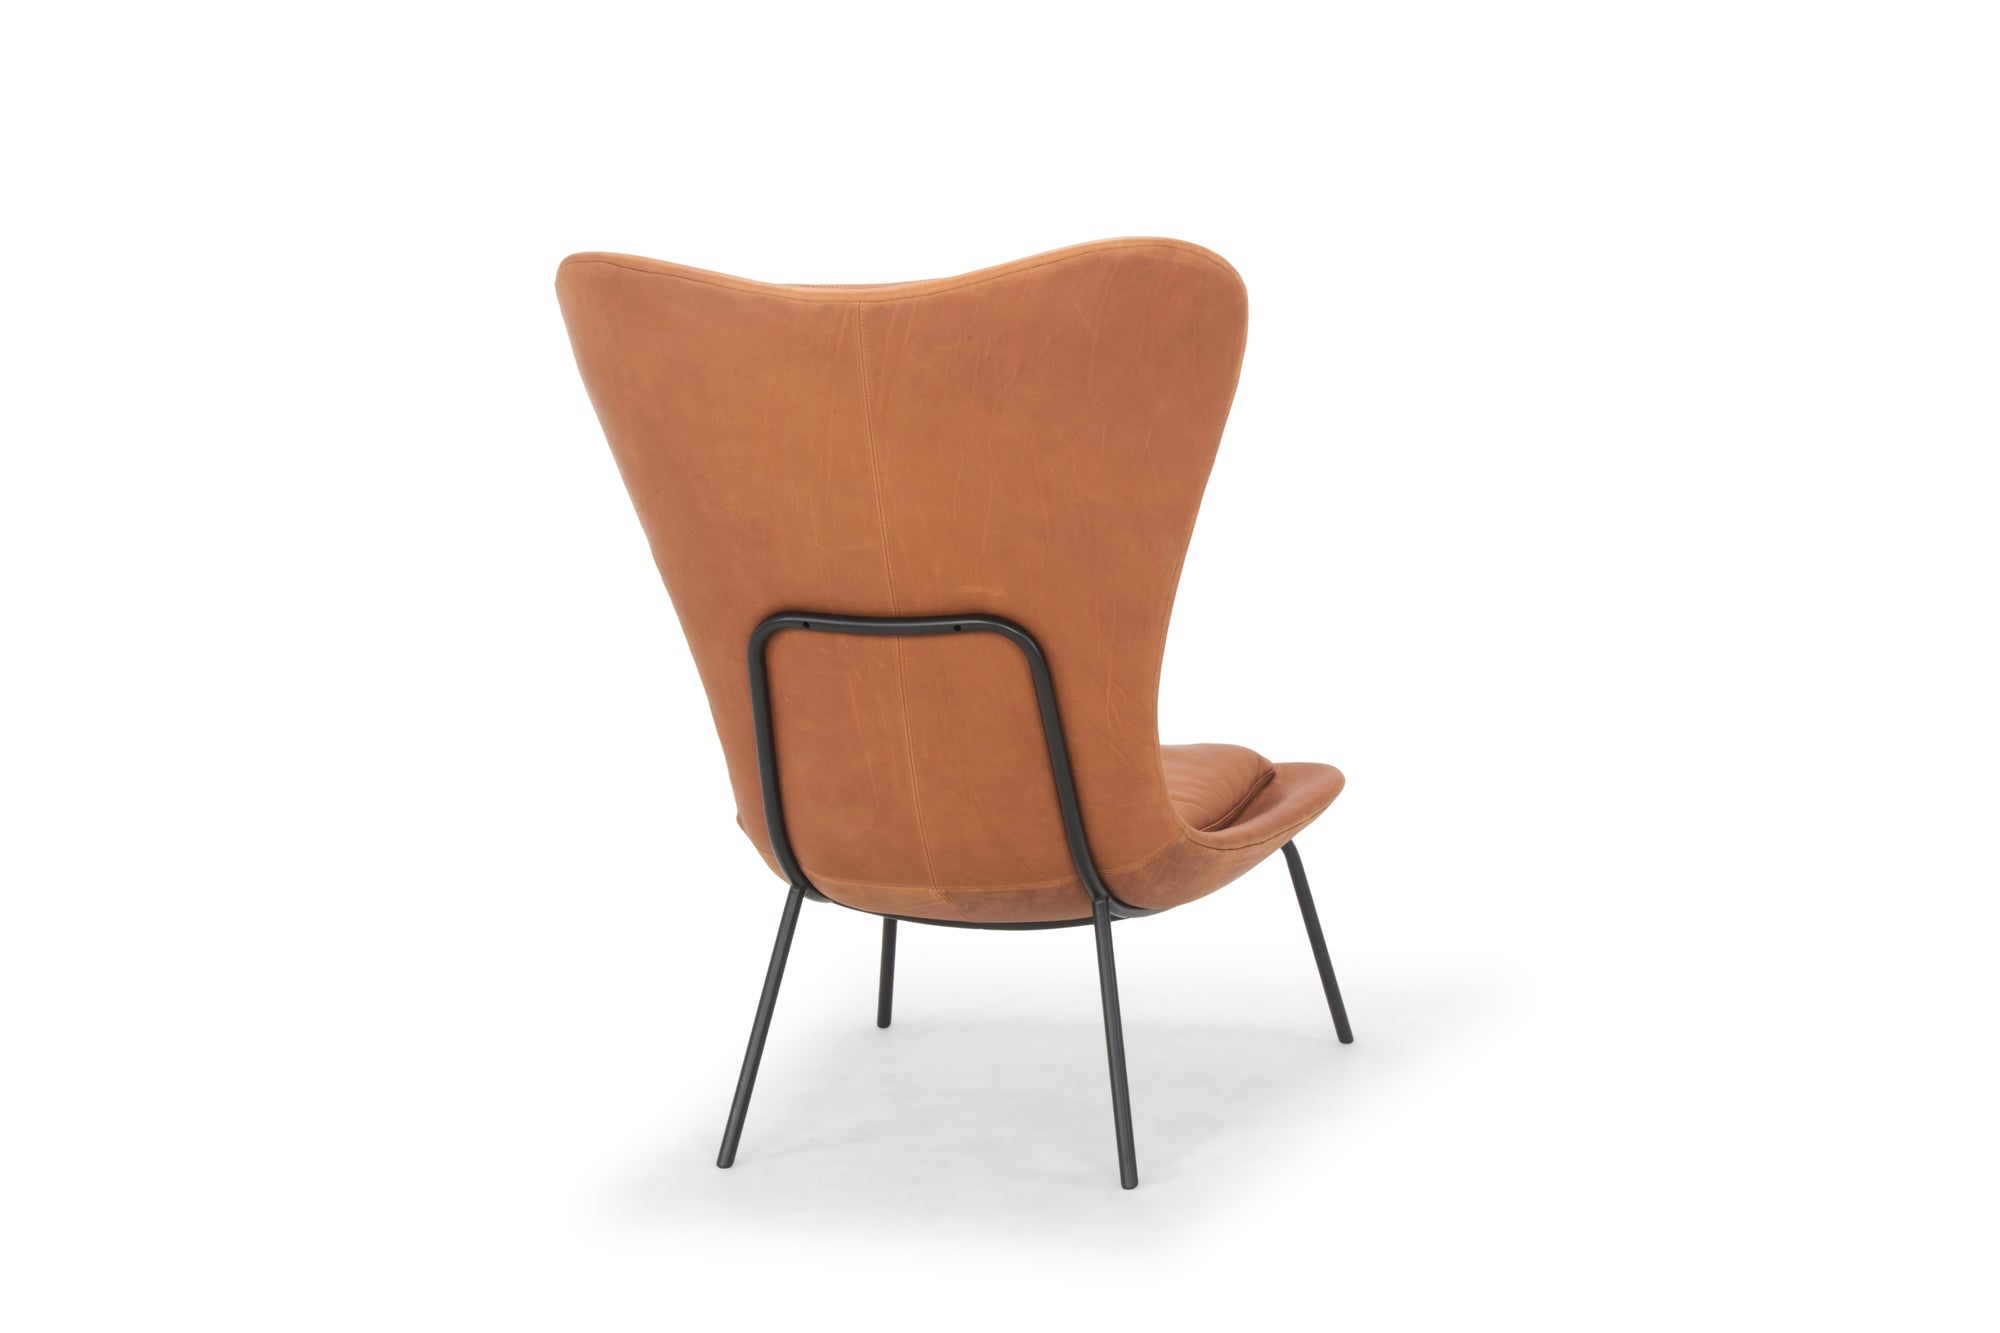 Phenomenal Hermes Large Modern Chair In Premium Tan Leather By Gmtry Best Dining Table And Chair Ideas Images Gmtryco